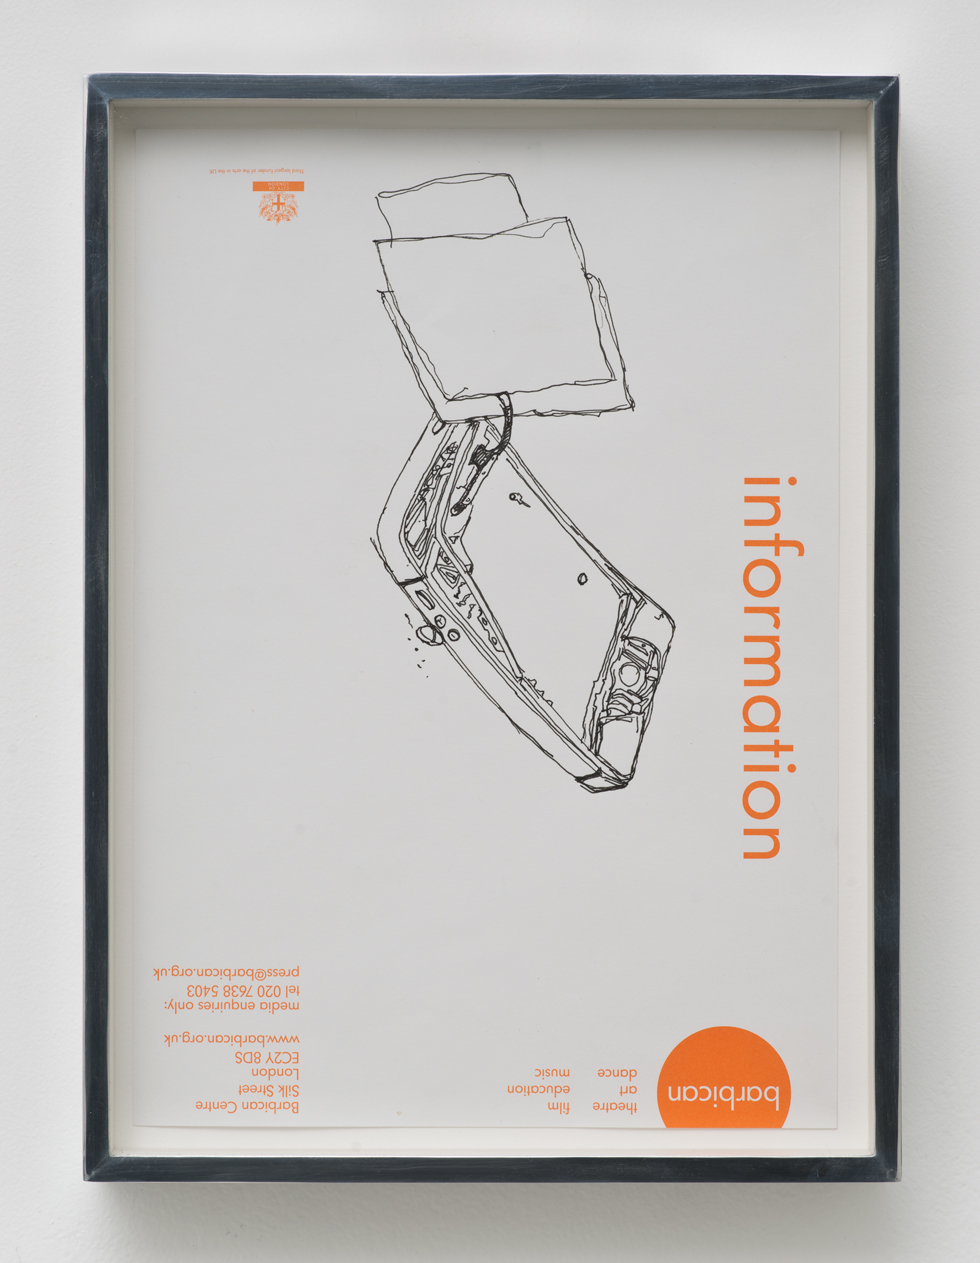 iPhone 5 A1429: Barbican Centre, London, United Kingdom, October 6, 2014   2015  Ink on letterhead  12 7/8 x 9 1/2 inches   Drawings, 2014–    Walid AlBeshti, 2015    Atopolis, 2015